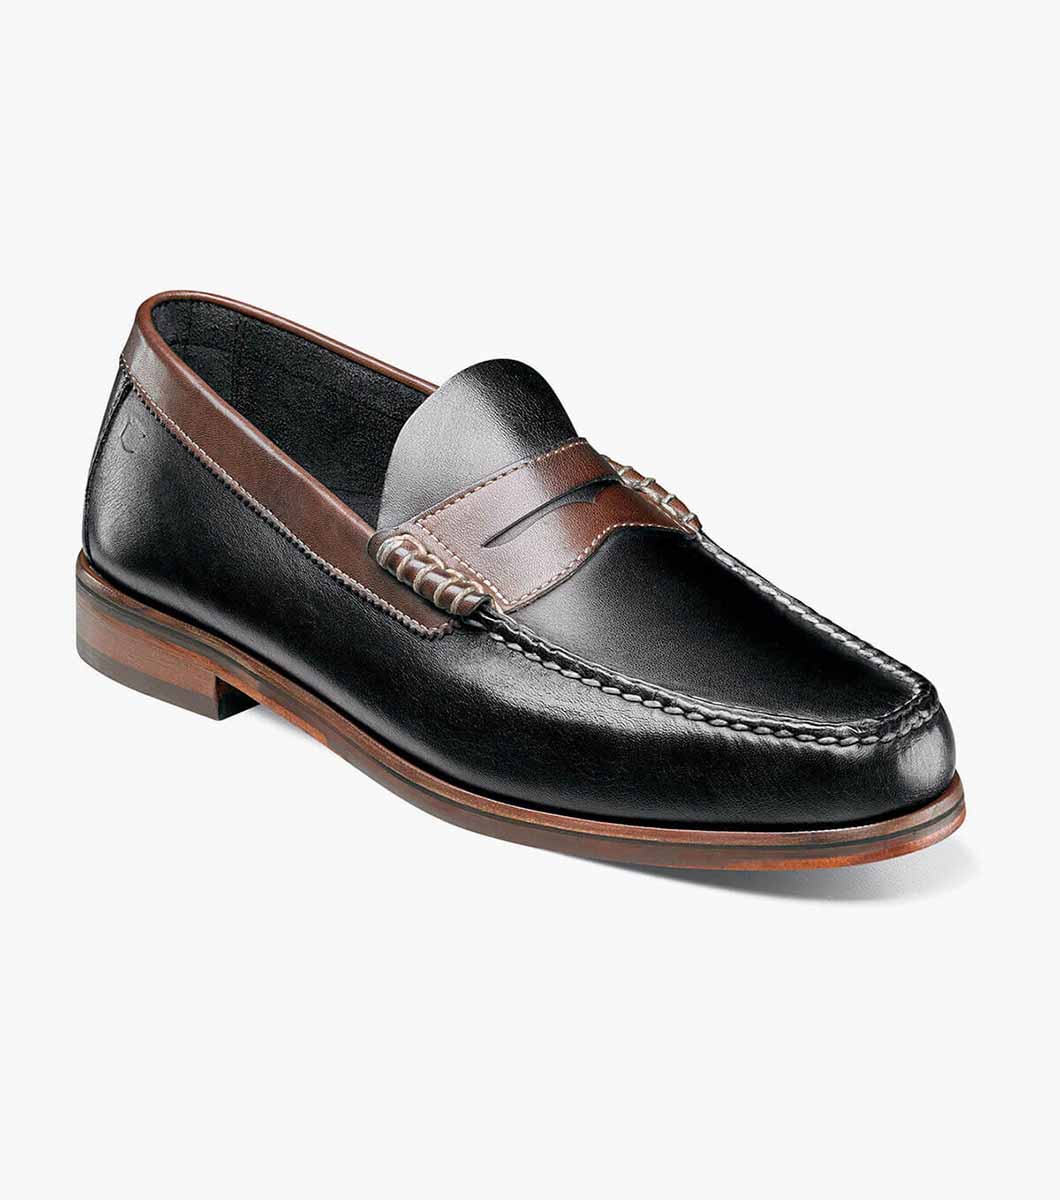 925de907a5a Heads Up. Moc Toe Penny Loafer